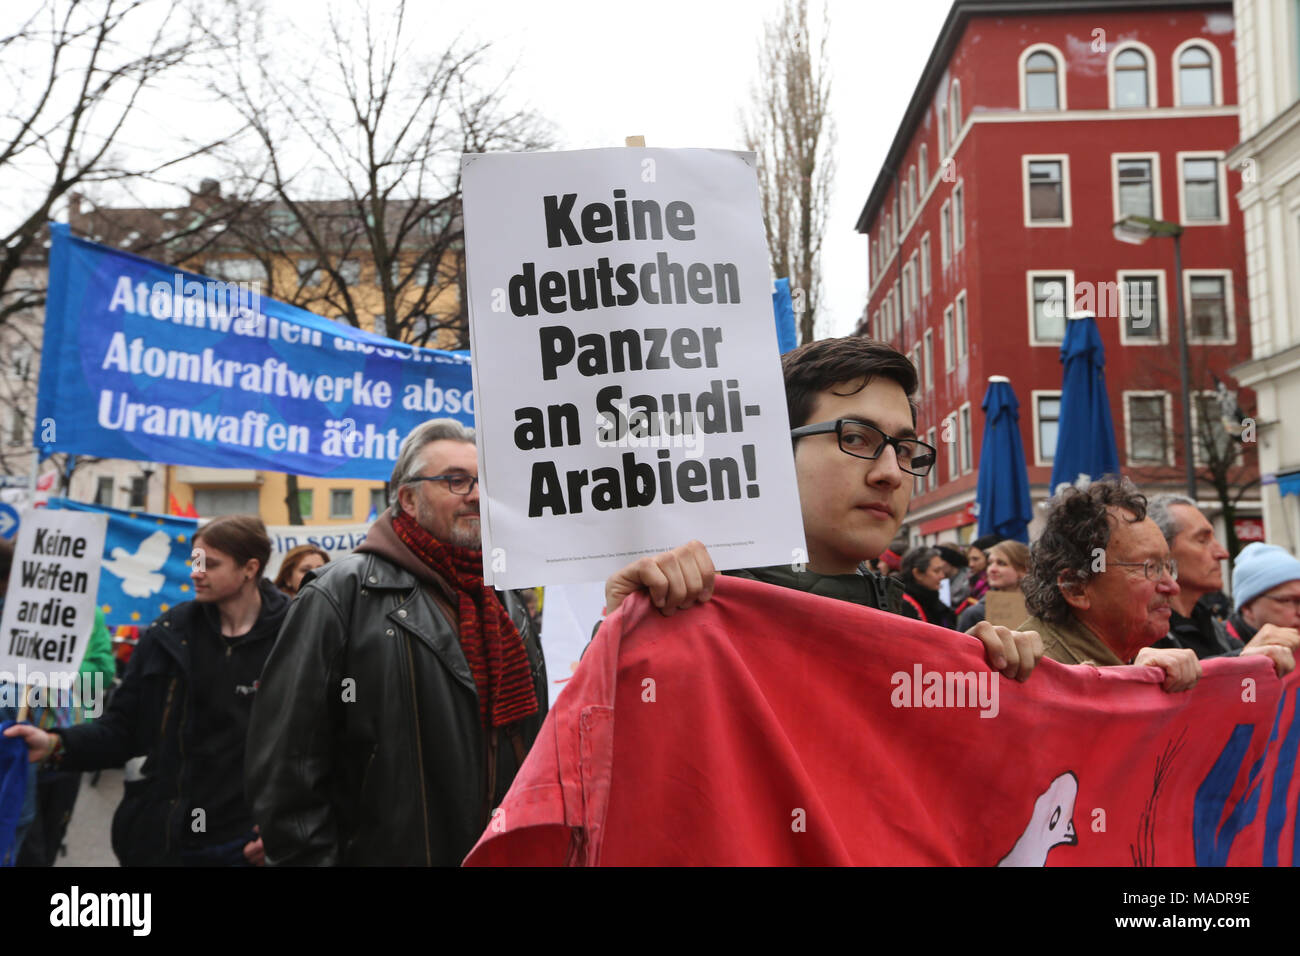 Munich, Germany. 31st Mar, 2018. Protestor has a sign speaking against arms export. Some thousand joined the Ostermarsch (easter march) for peace and disarmament. The Ostermarsch is a traditional peace demonstration, which is held yearly in hundreds of German towns. Credit: Alexander Pohl/Pacific Press/Alamy Live News Credit: PACIFIC PRESS/Alamy Live News - Stock Image